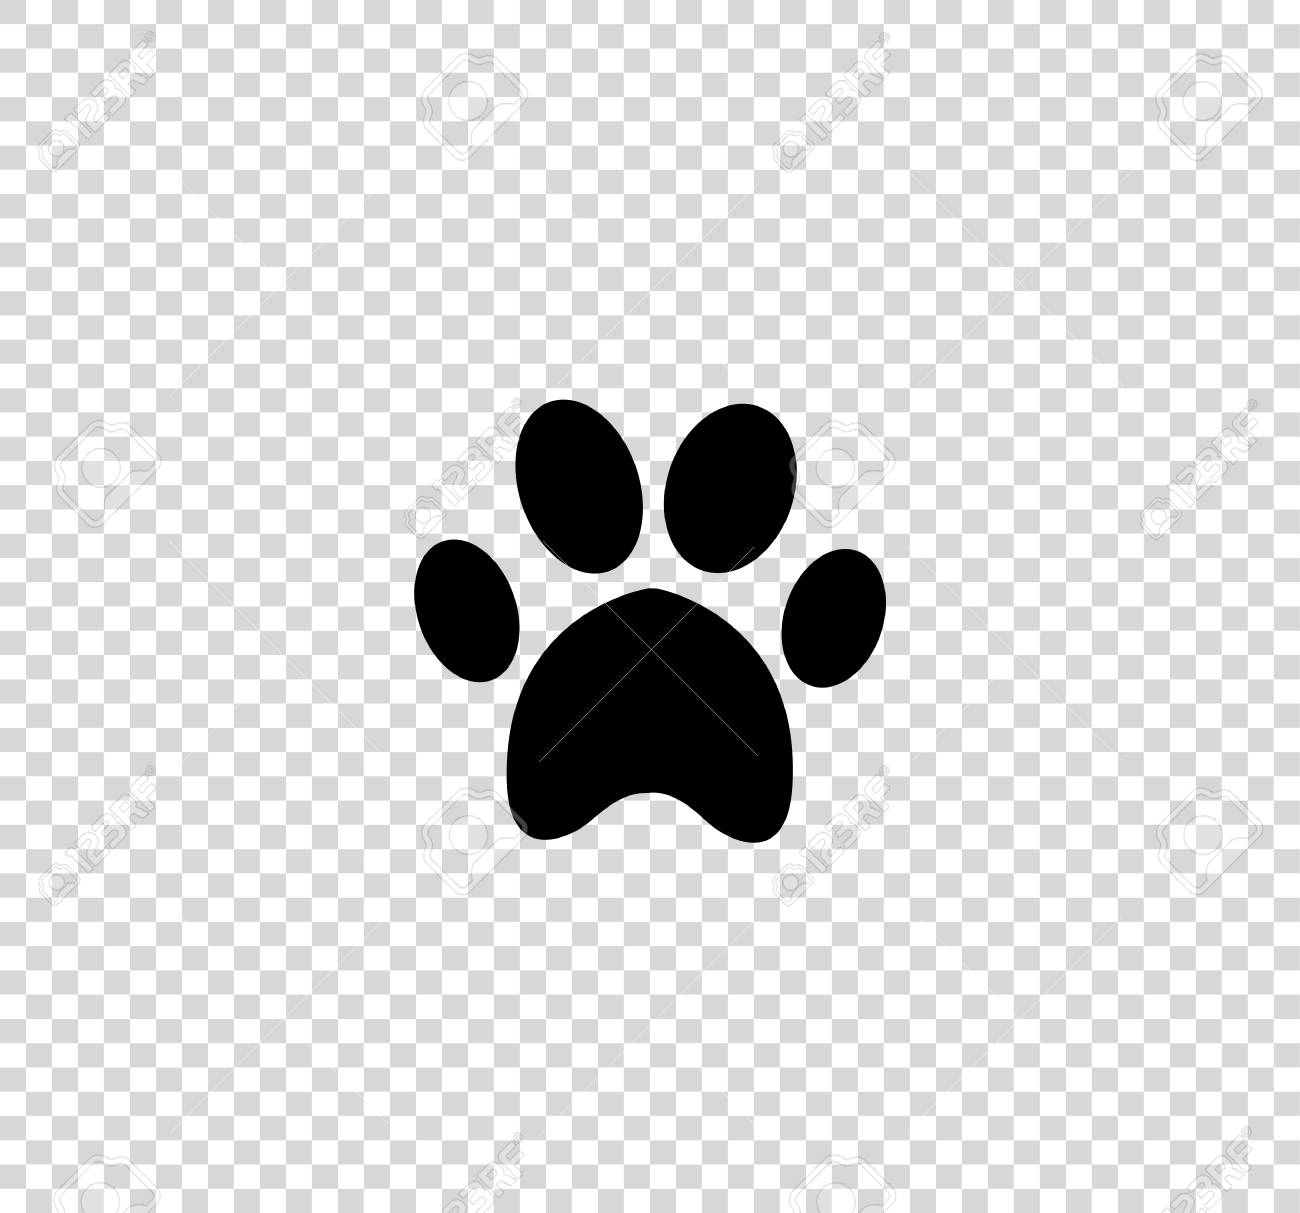 Paw Print No Background & Free Paw Print No Background.png.